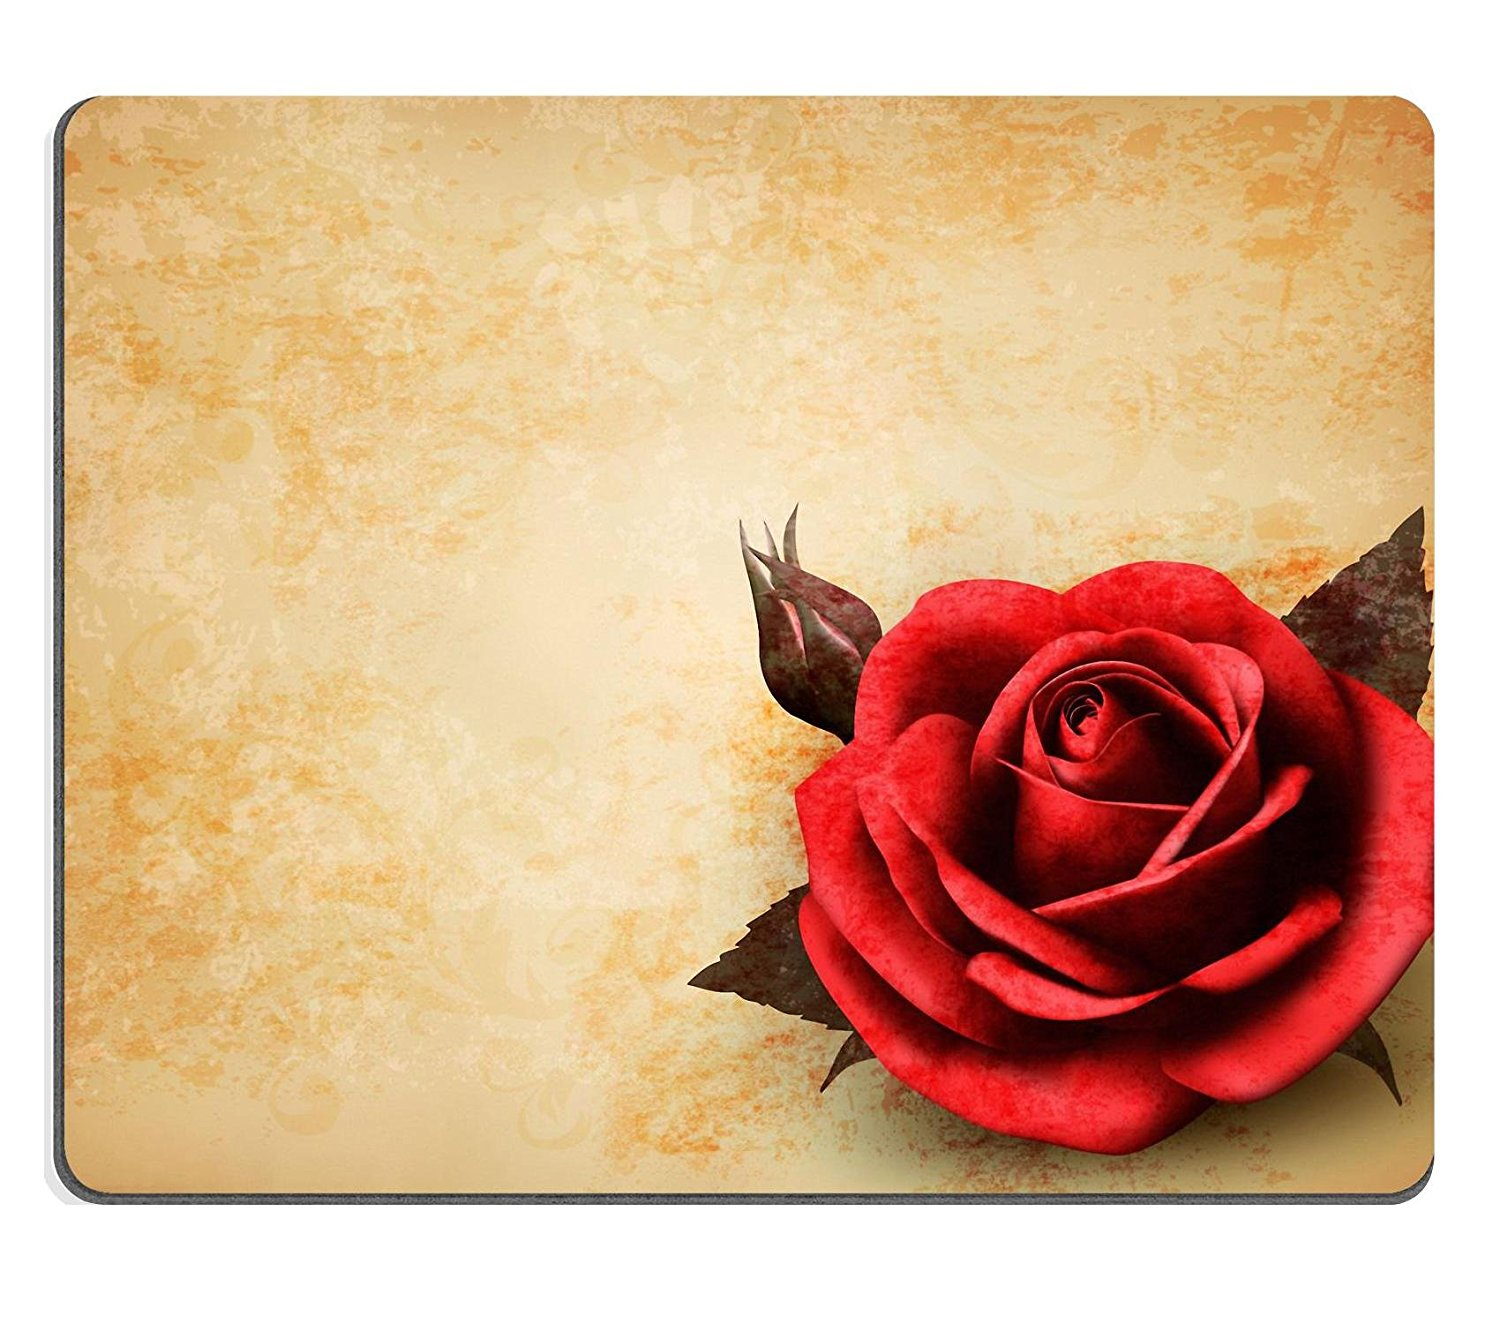 Qzone Mousepads Abstract bright background with pink flowers IMAGE 19196274 Customized Art Desktop Laptop Gaming mouse Pad